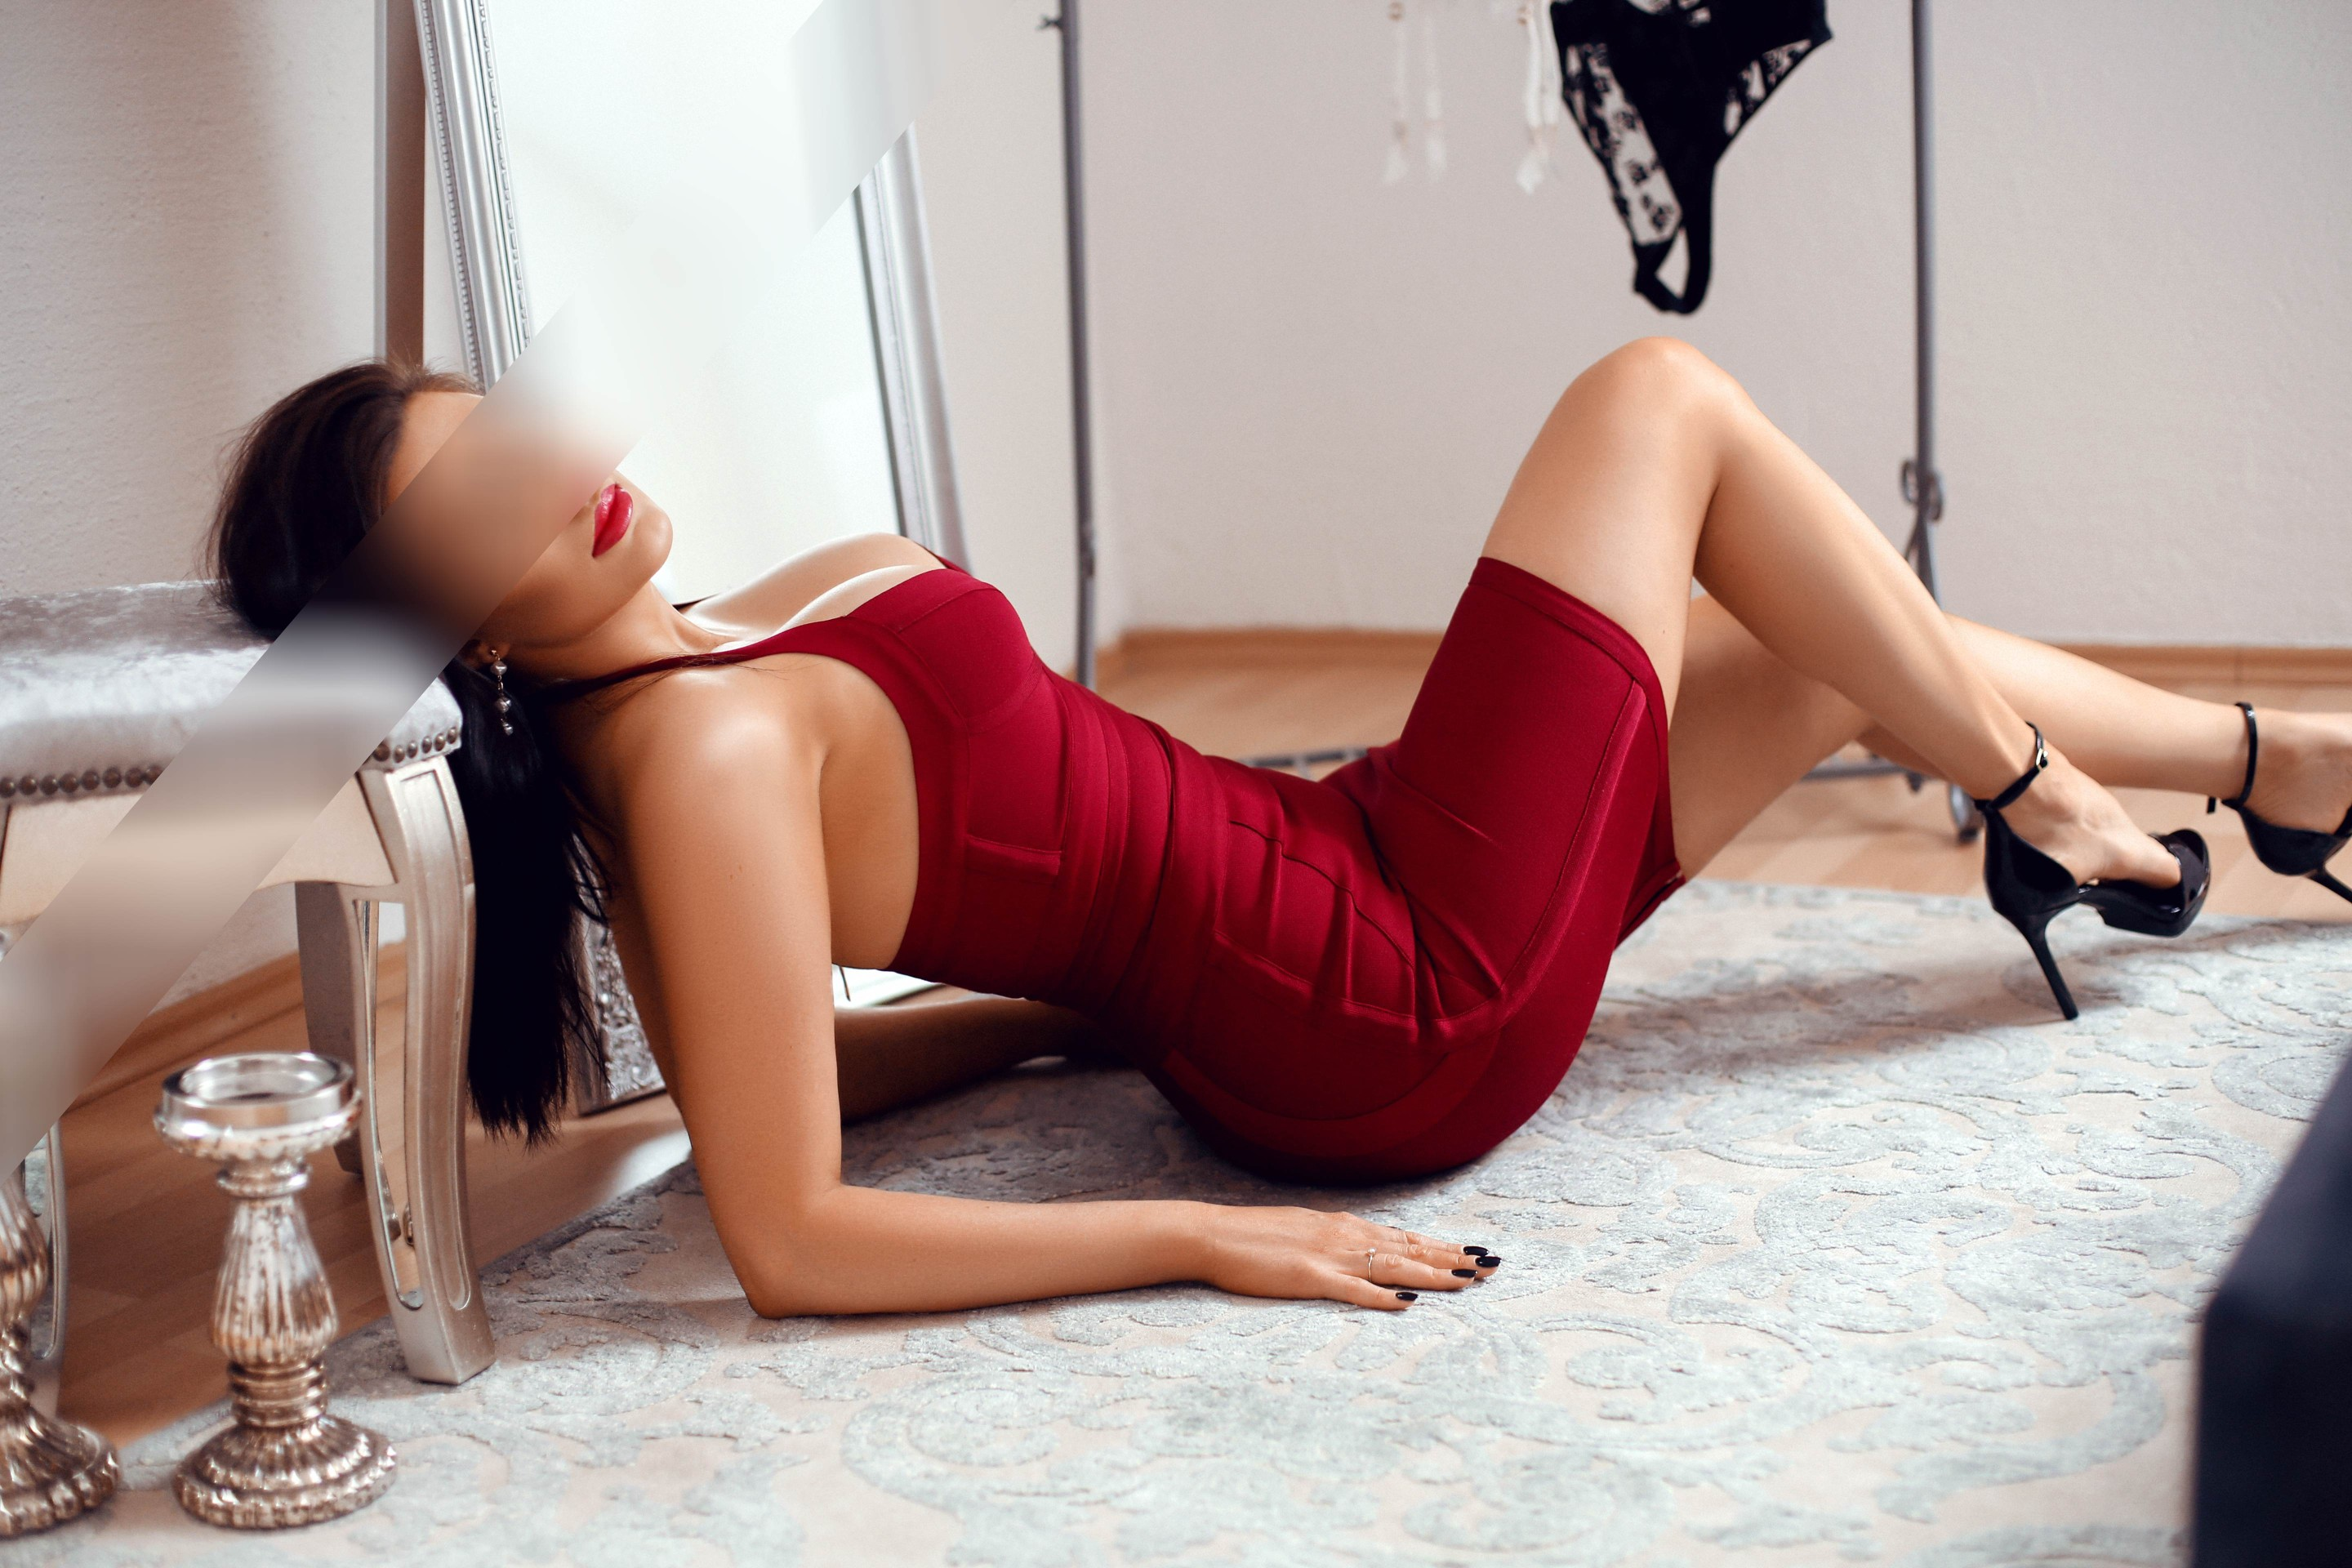 Massage parlour in reading